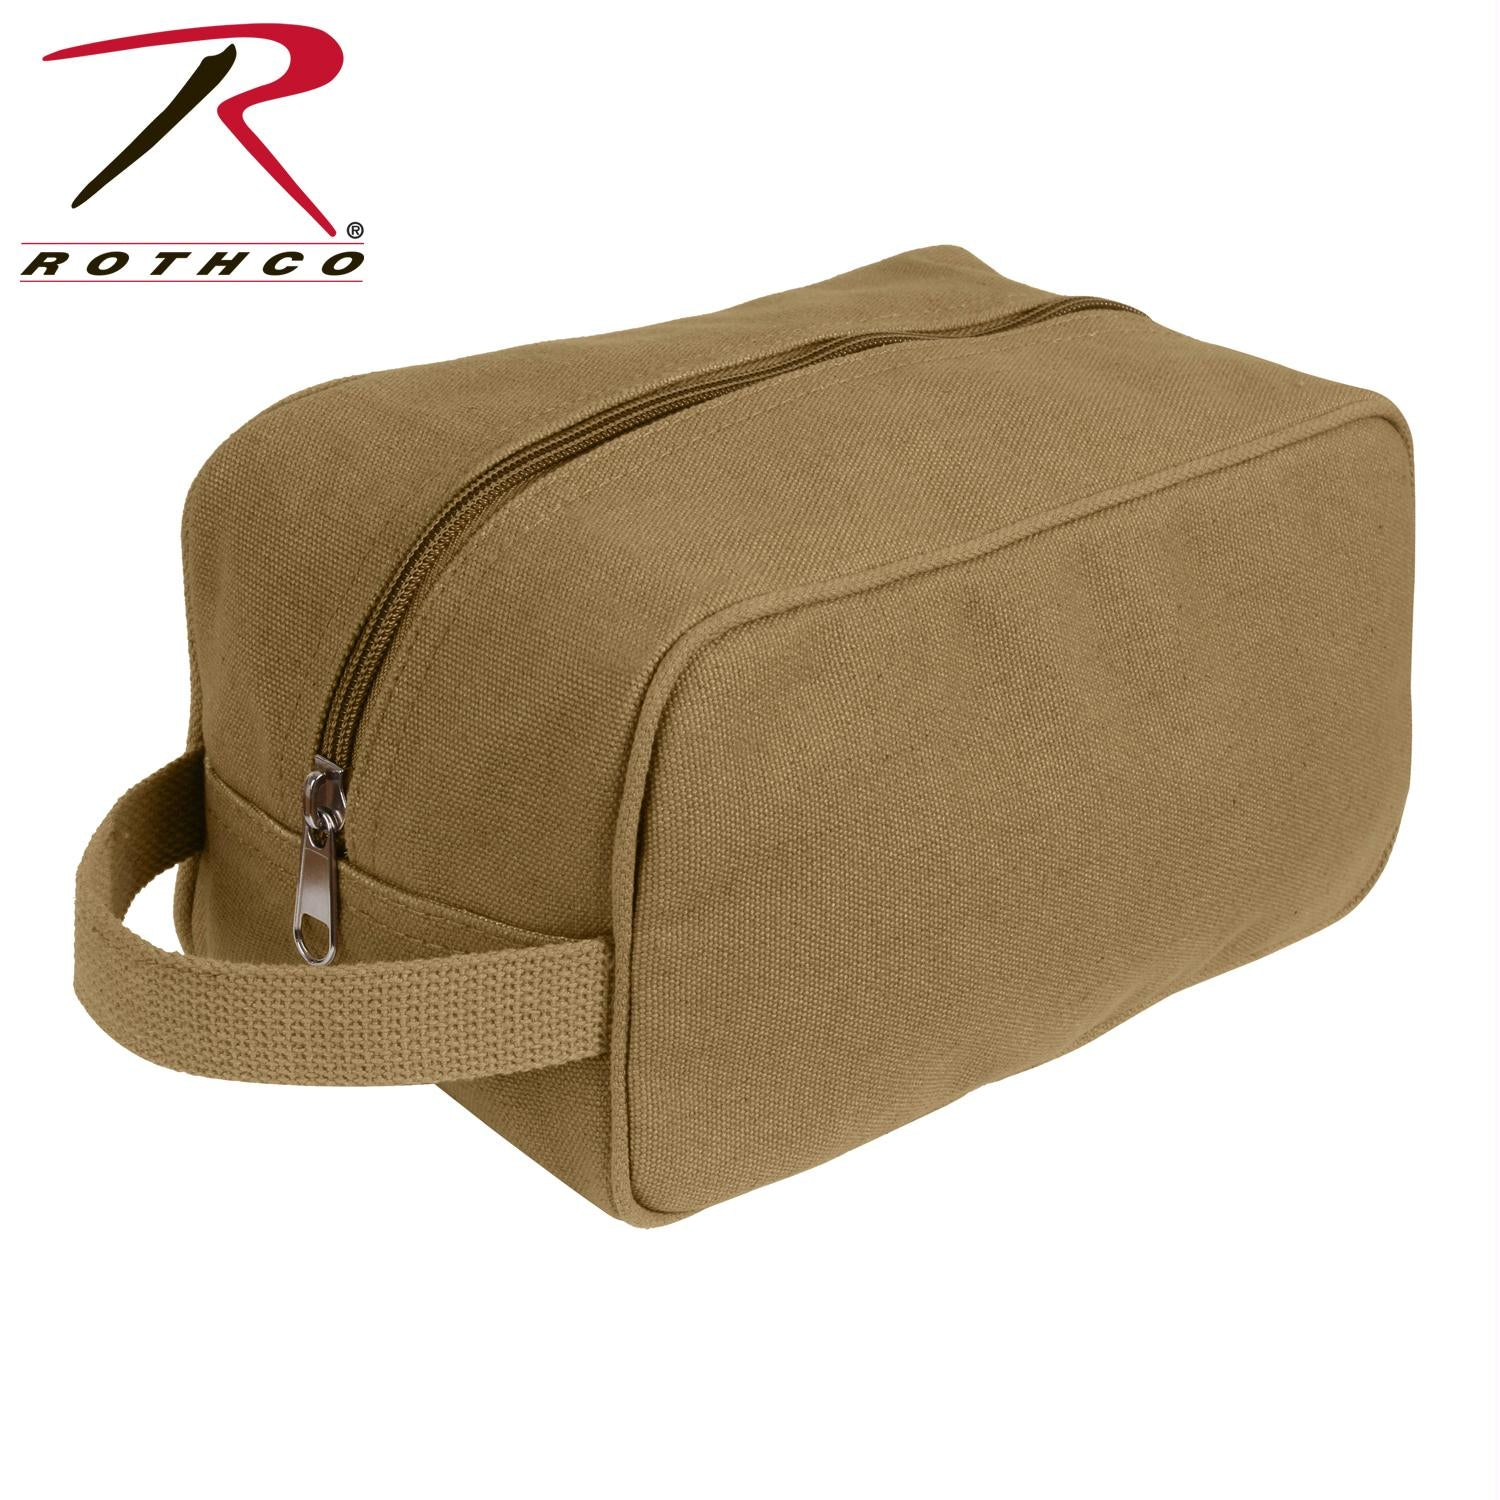 Rothco Canvas Travel Kit - Coyote Brown